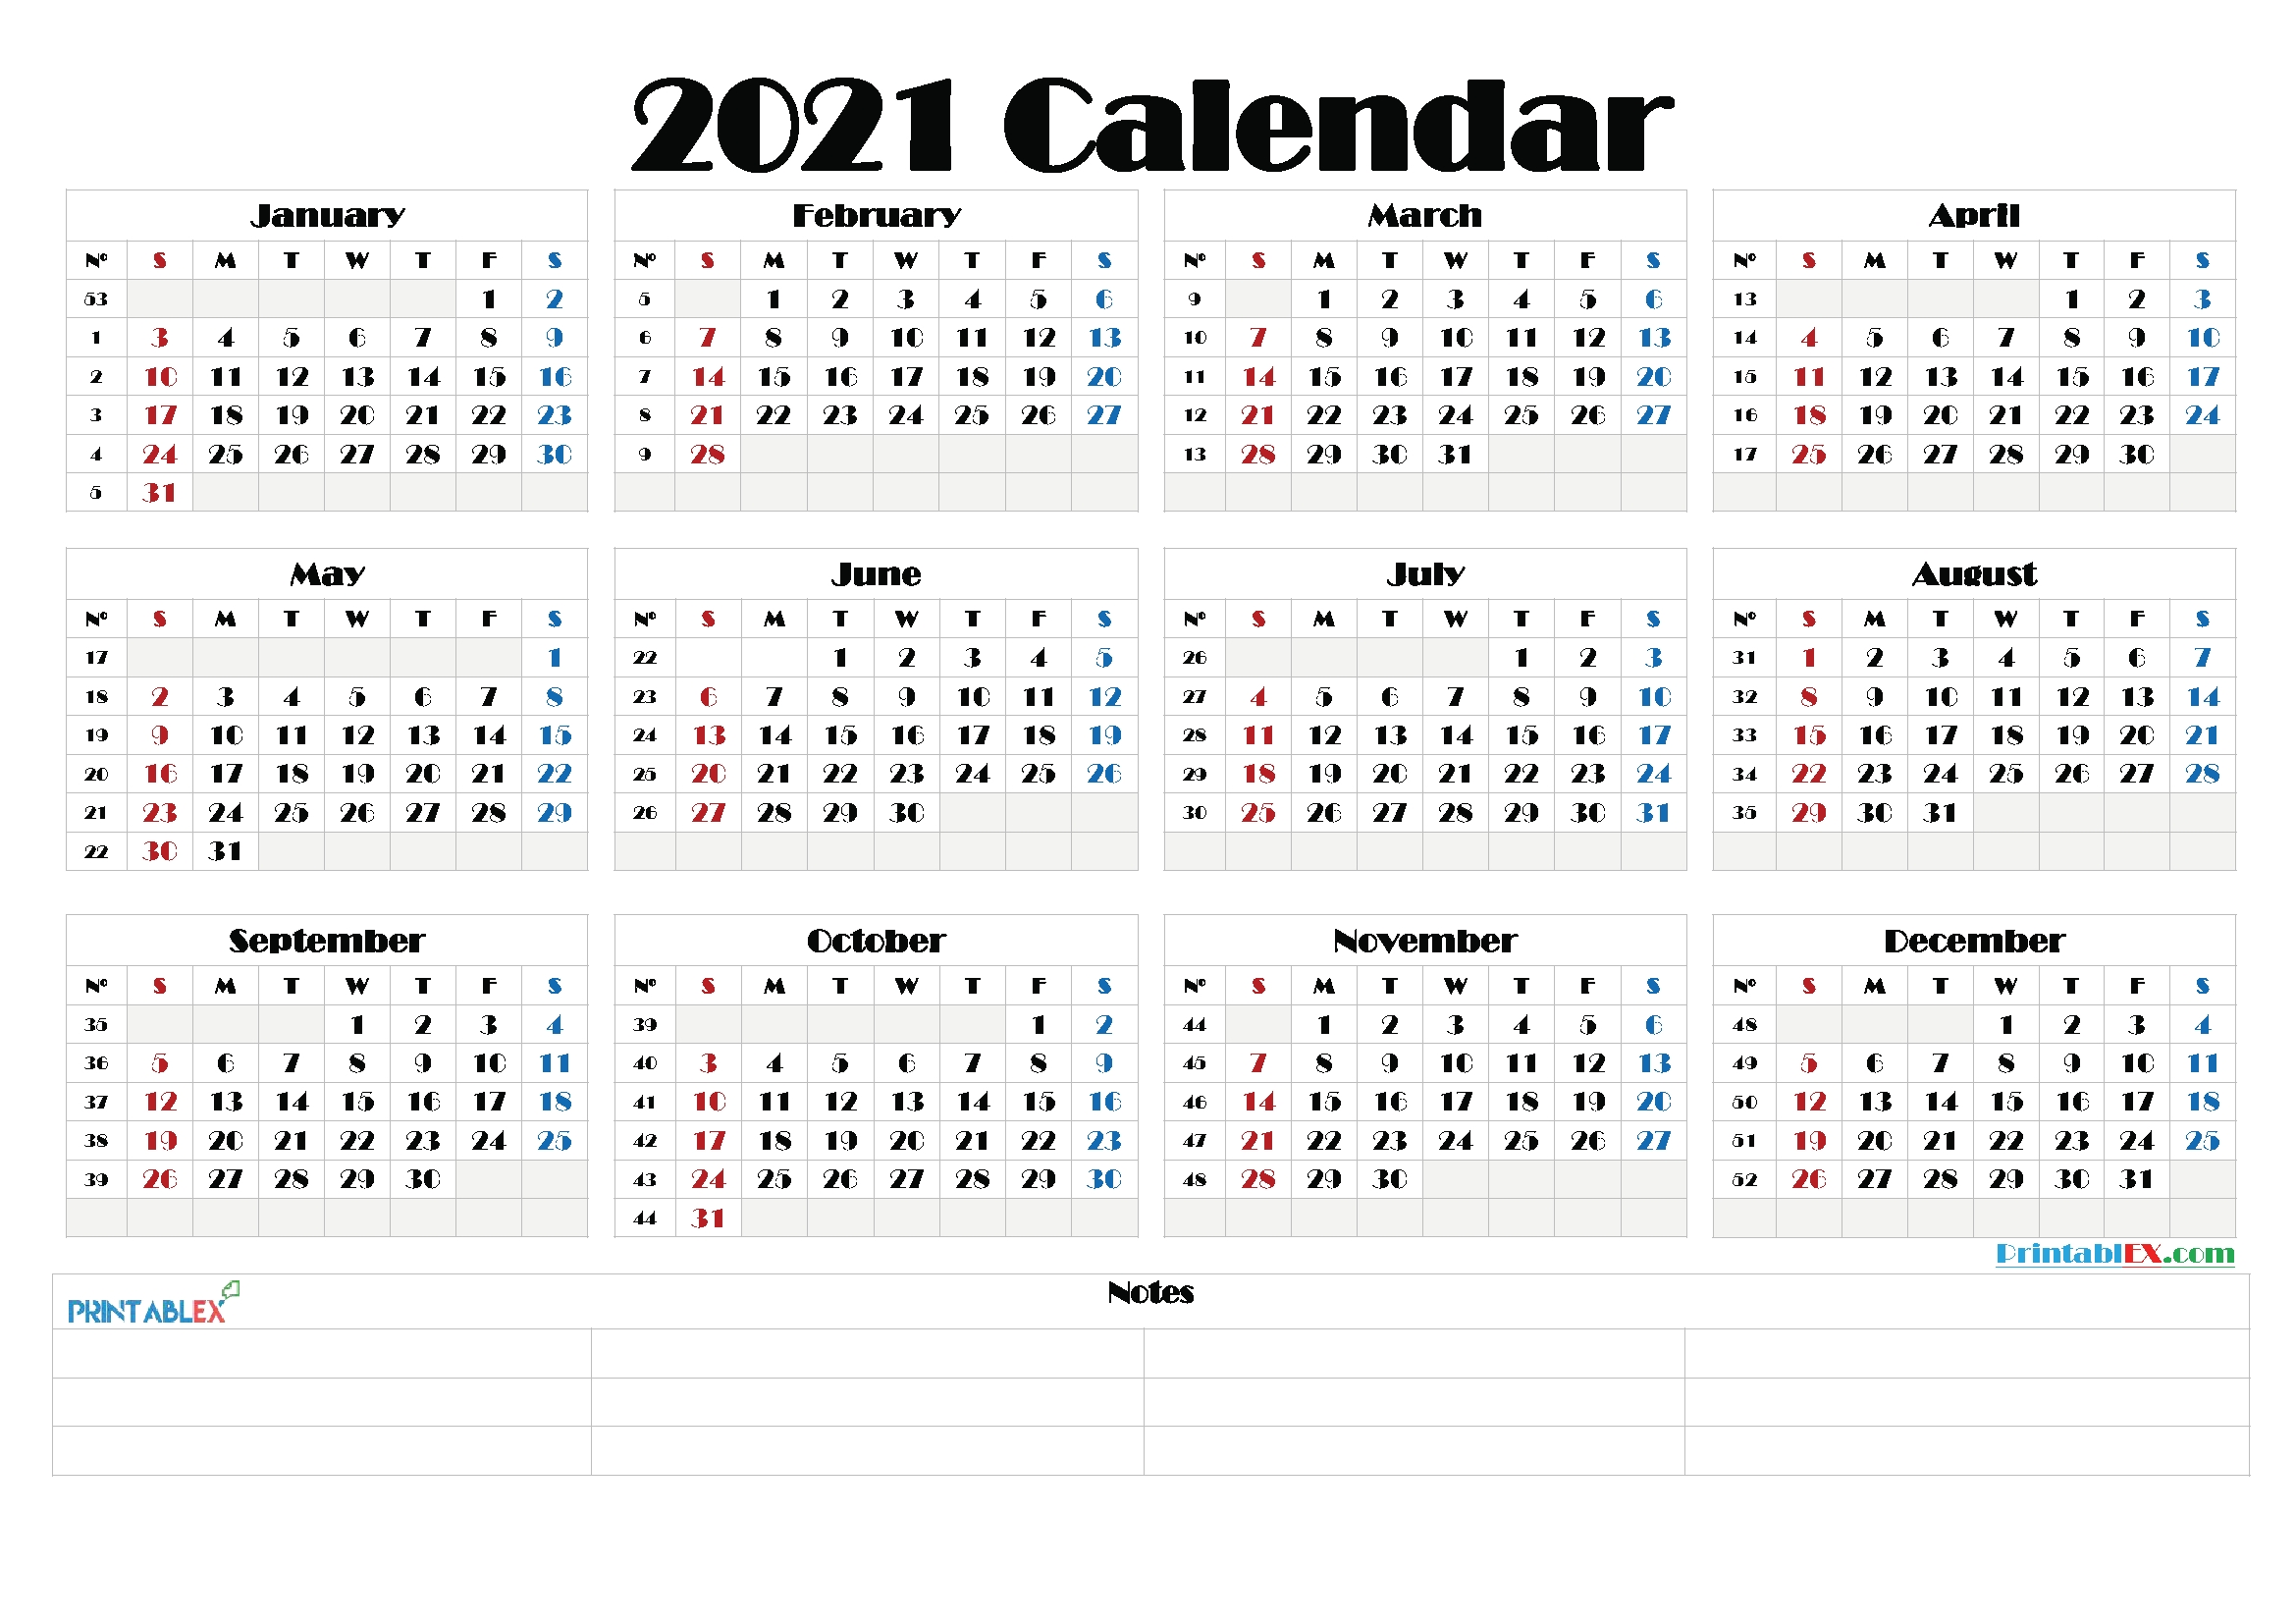 Free 2021 Yearly Calender Template - 2021 Printable Yearly Calendar Free Hipi Info : Below Are in Google 2021 Calendar Printable Image